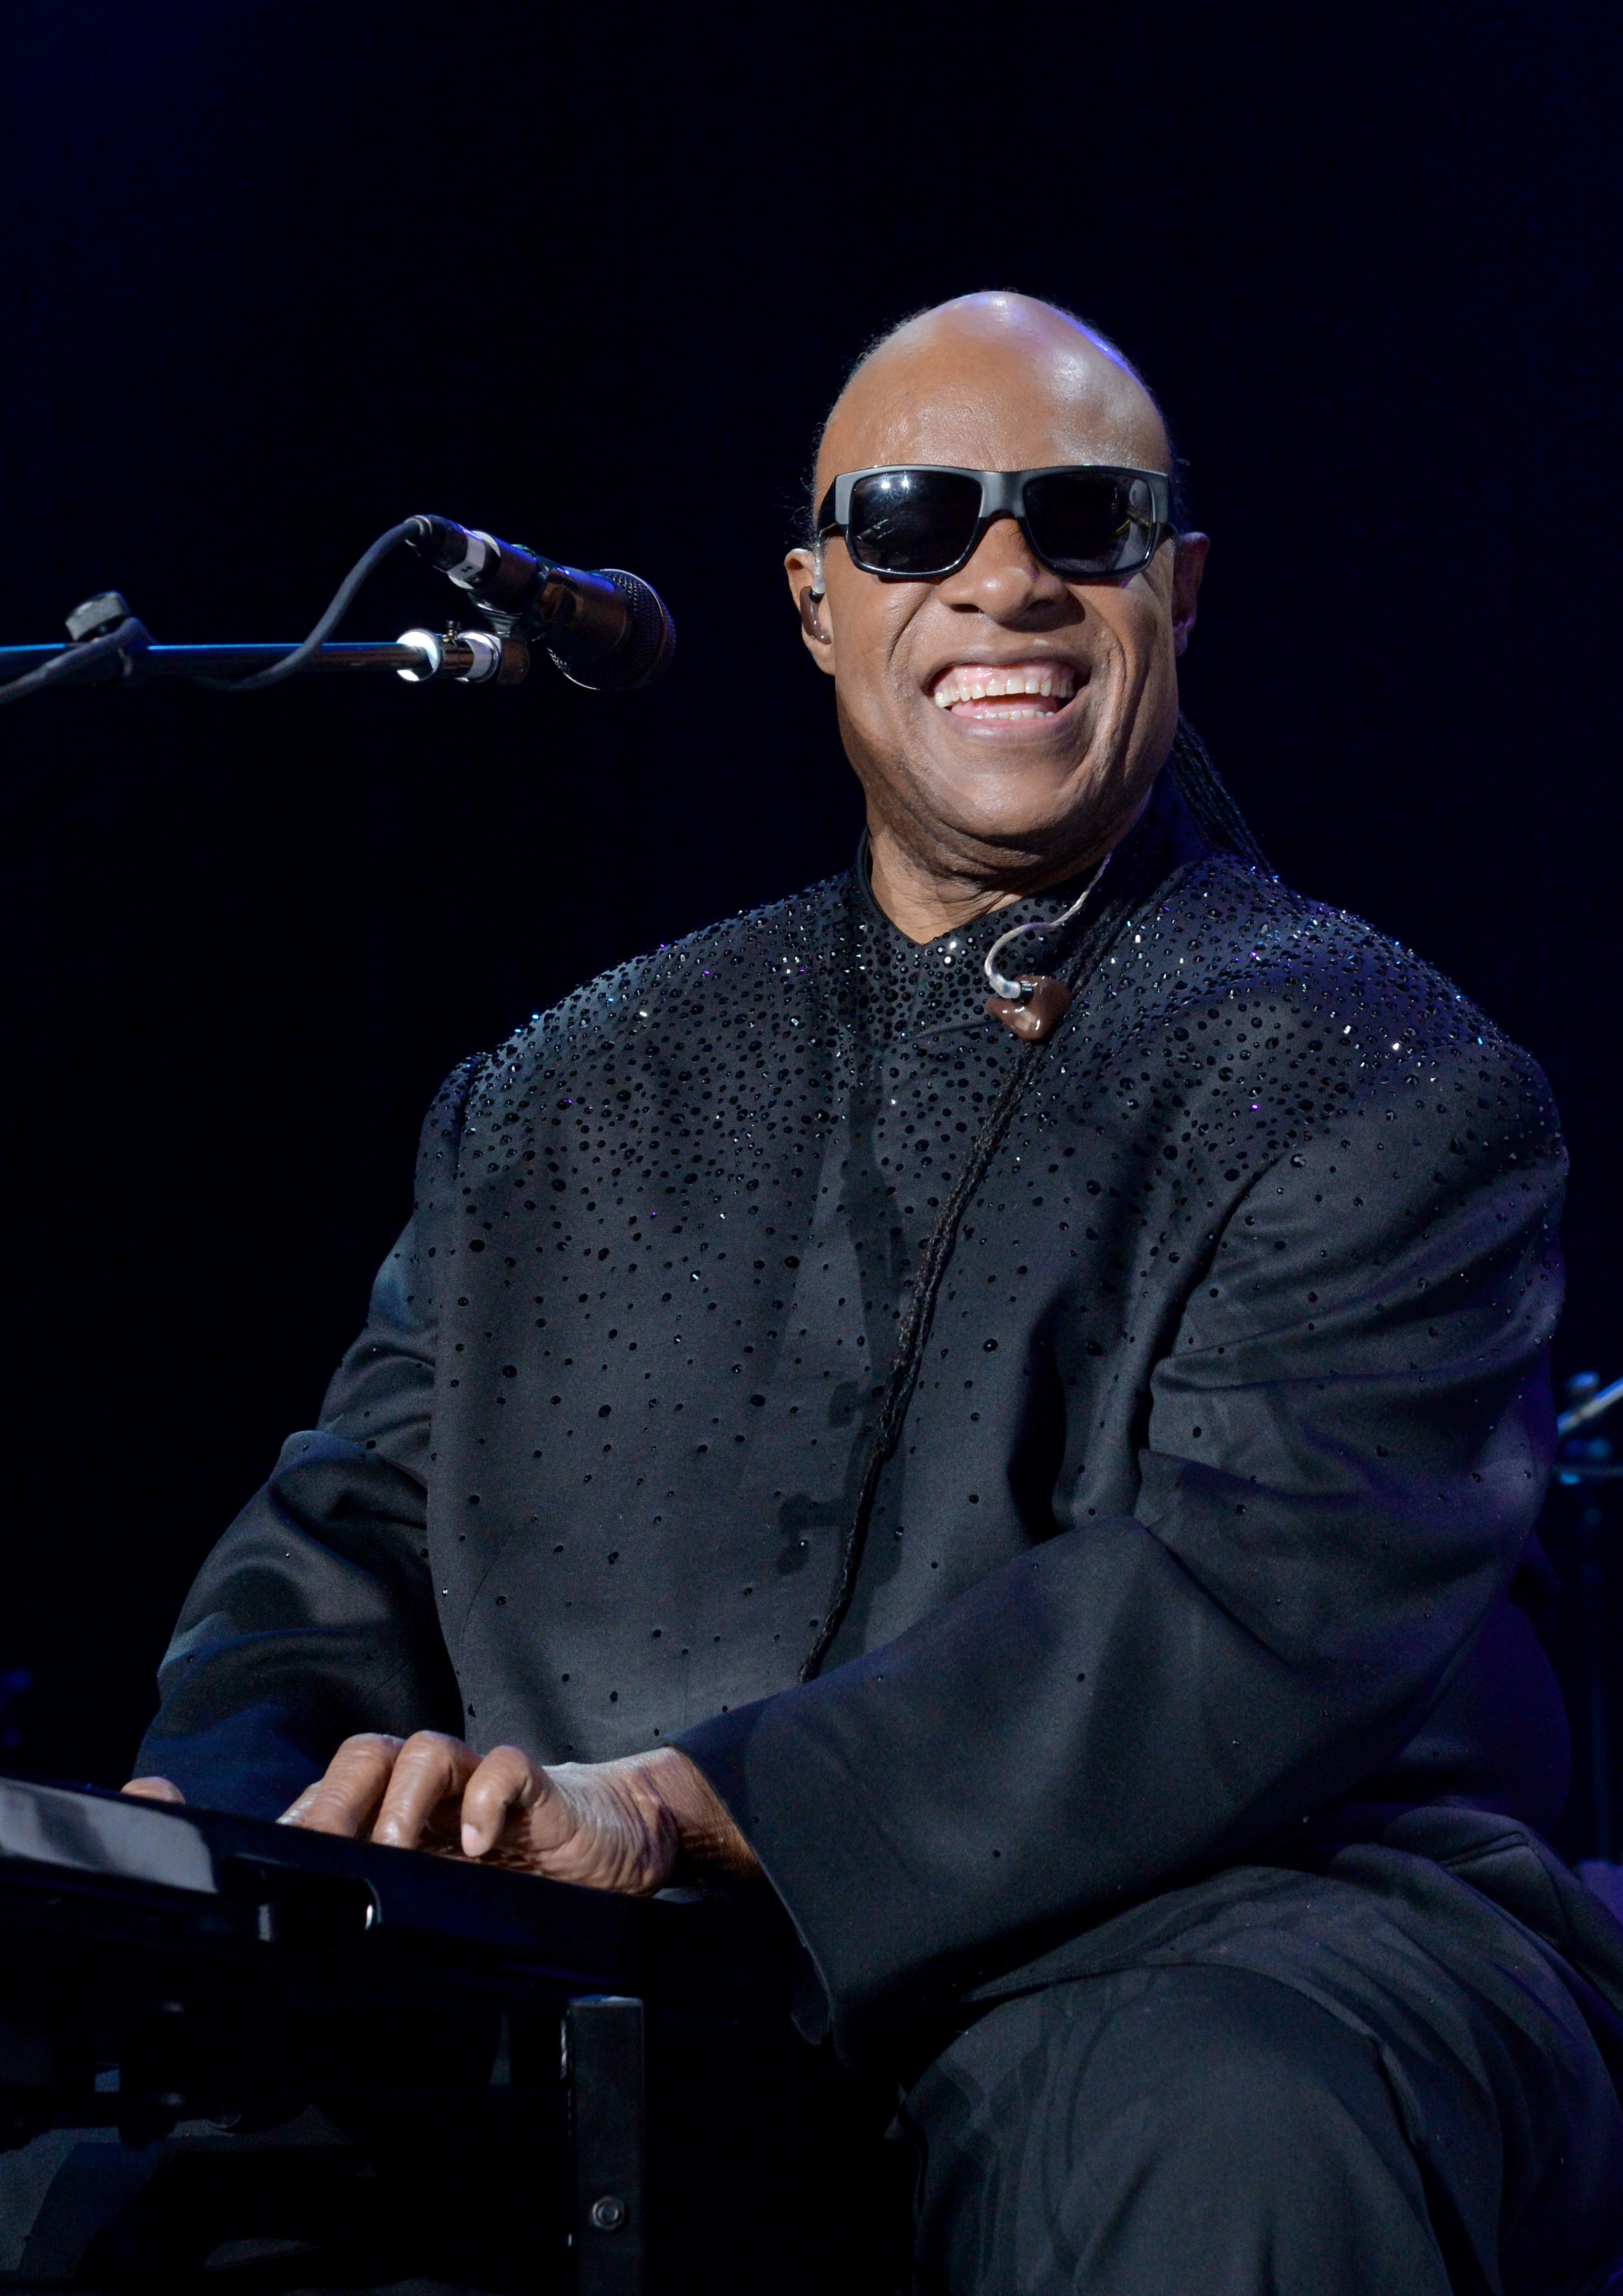 Stevie Wonder performs onstage during the 19th Annual House Full Of Toys Benefit Concert  Songs In the Key Of Life  performance at The Forum on December 20, 2014 in Inglewood, California.